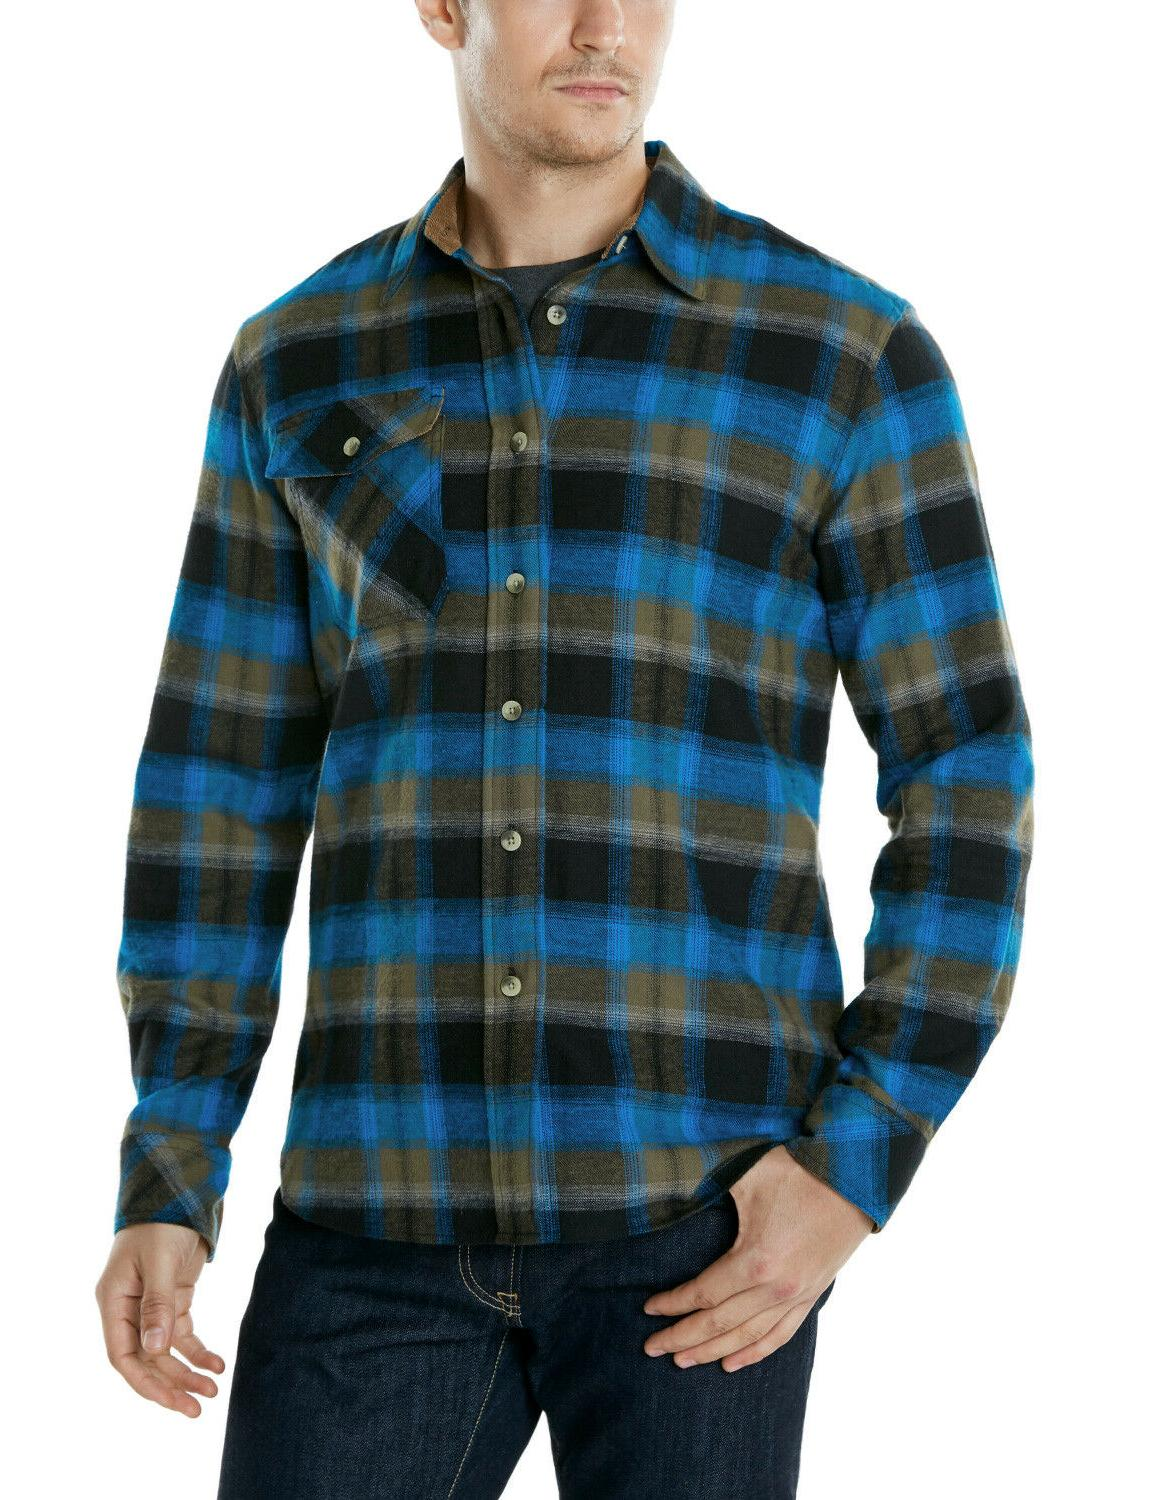 CQR Men's Shirt, Sleeve Shirt, Brushed Outdoor